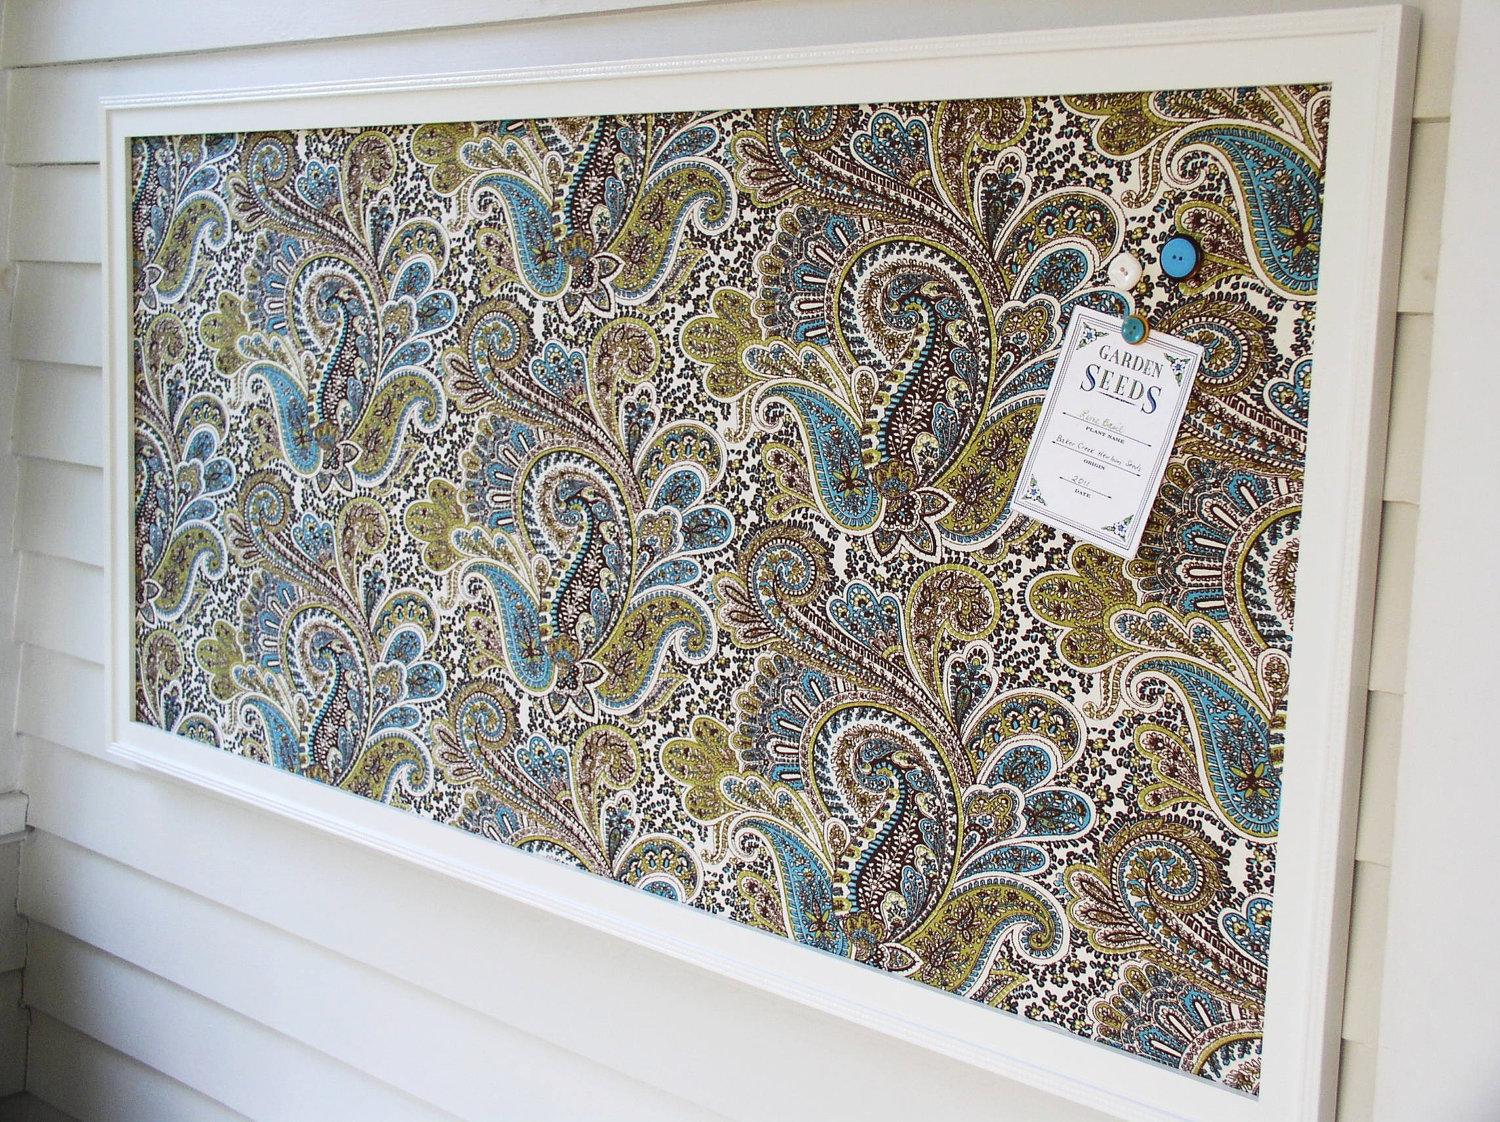 Beau Appealing Handmade Decorative Magnetic Board With Stunning Patterned Fabric  Plus Wooden Framed Mounted On The Wall